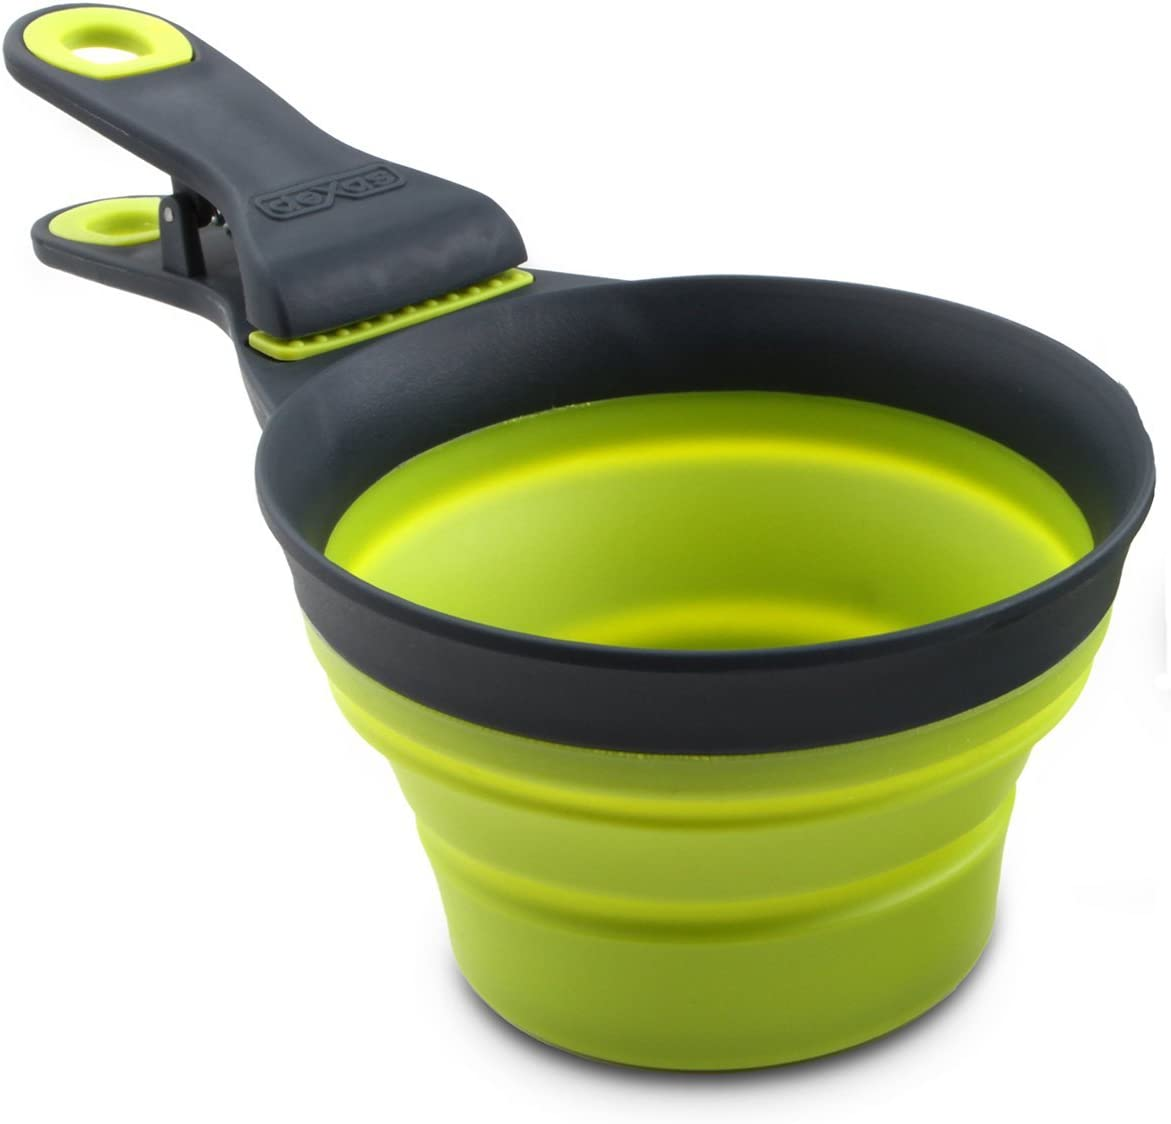 Dexas Popware for Pets Collapsible KlipScoop